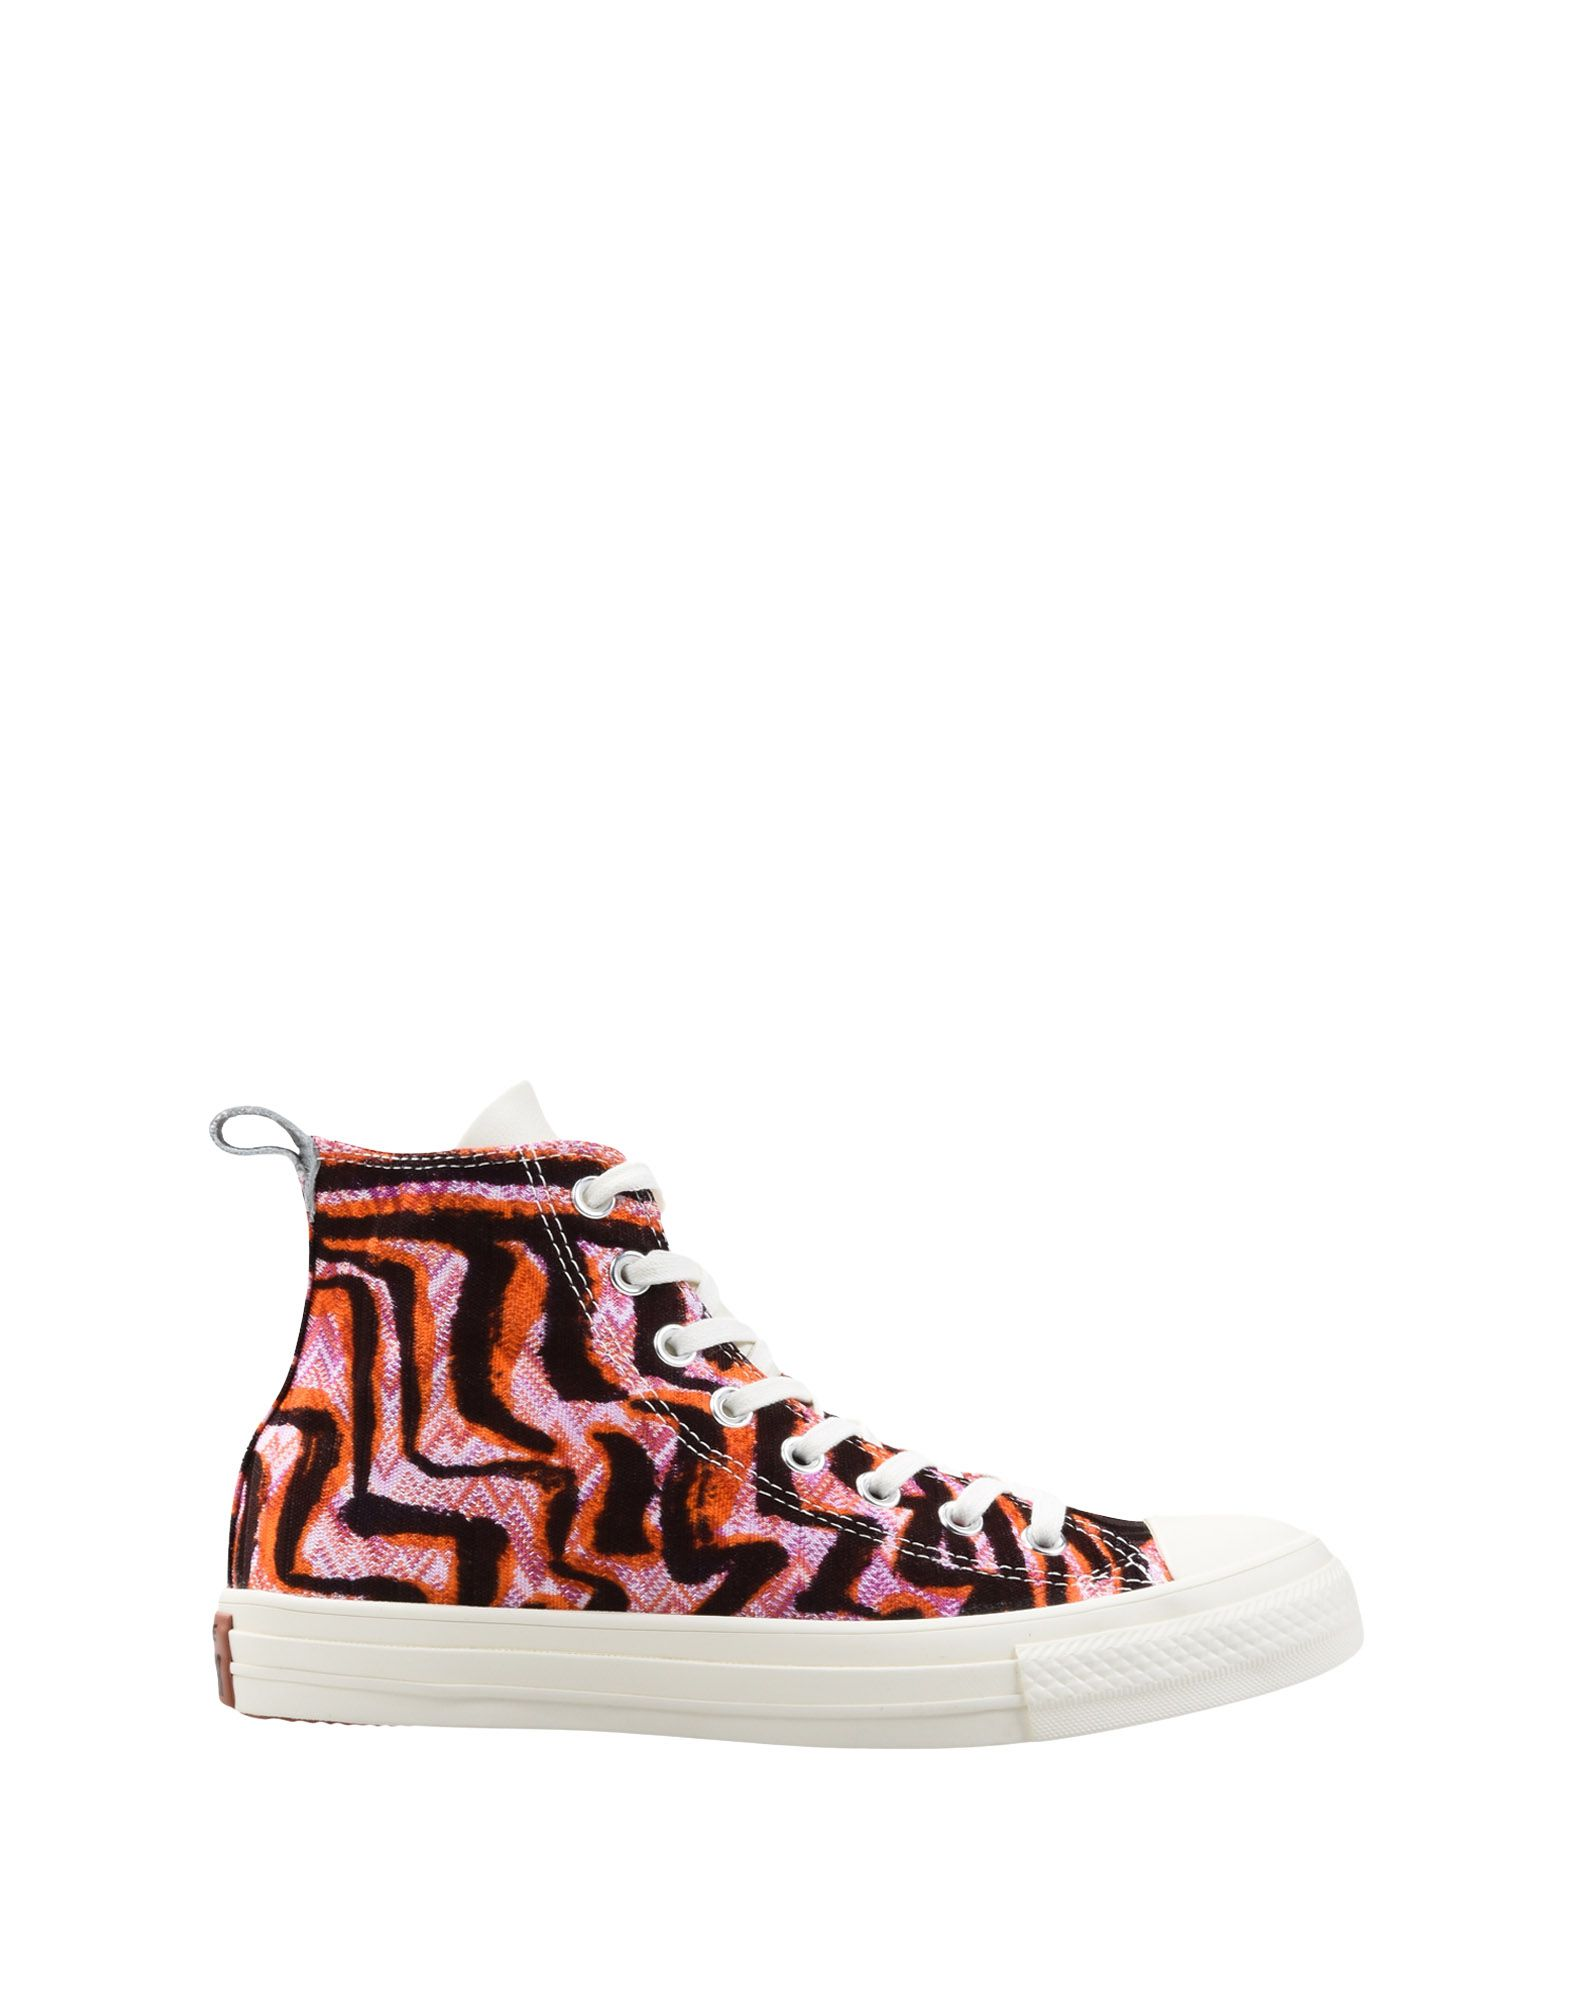 Sneakers Converse All Star Missoni Femme - Sneakers Converse All Star Missoni sur